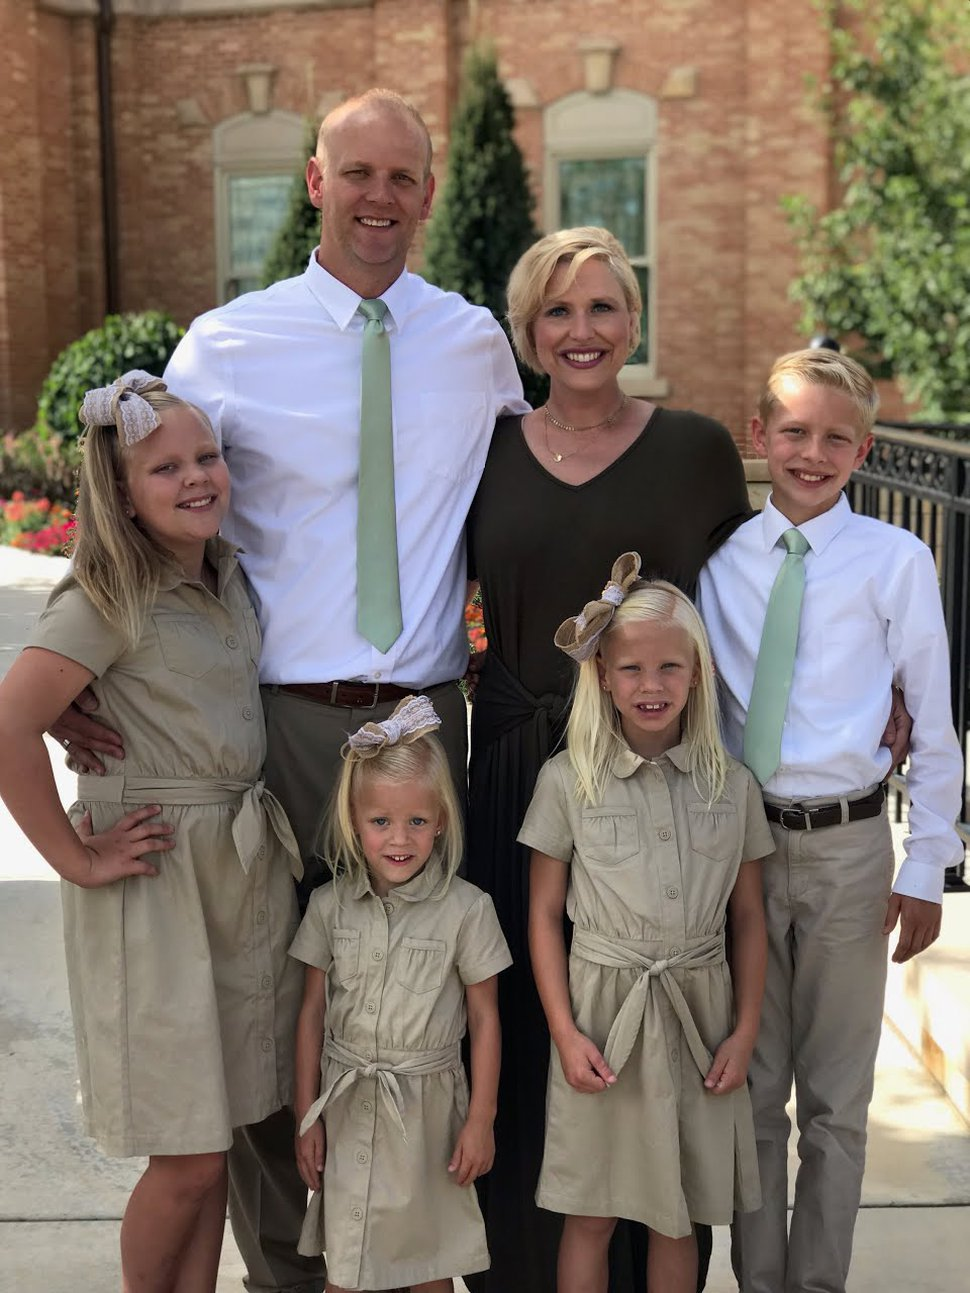 (Photo courtesy of Ashlyn Whitaker) Ashlyn Whitaker, back right, experienced postpartum anxiety and psychosis after having her four children, from left to right, Whitney, Oakley, McKinley and Tycen. Her husband, Shawn, back left, took her to the emergency room twice after having their fourth child.